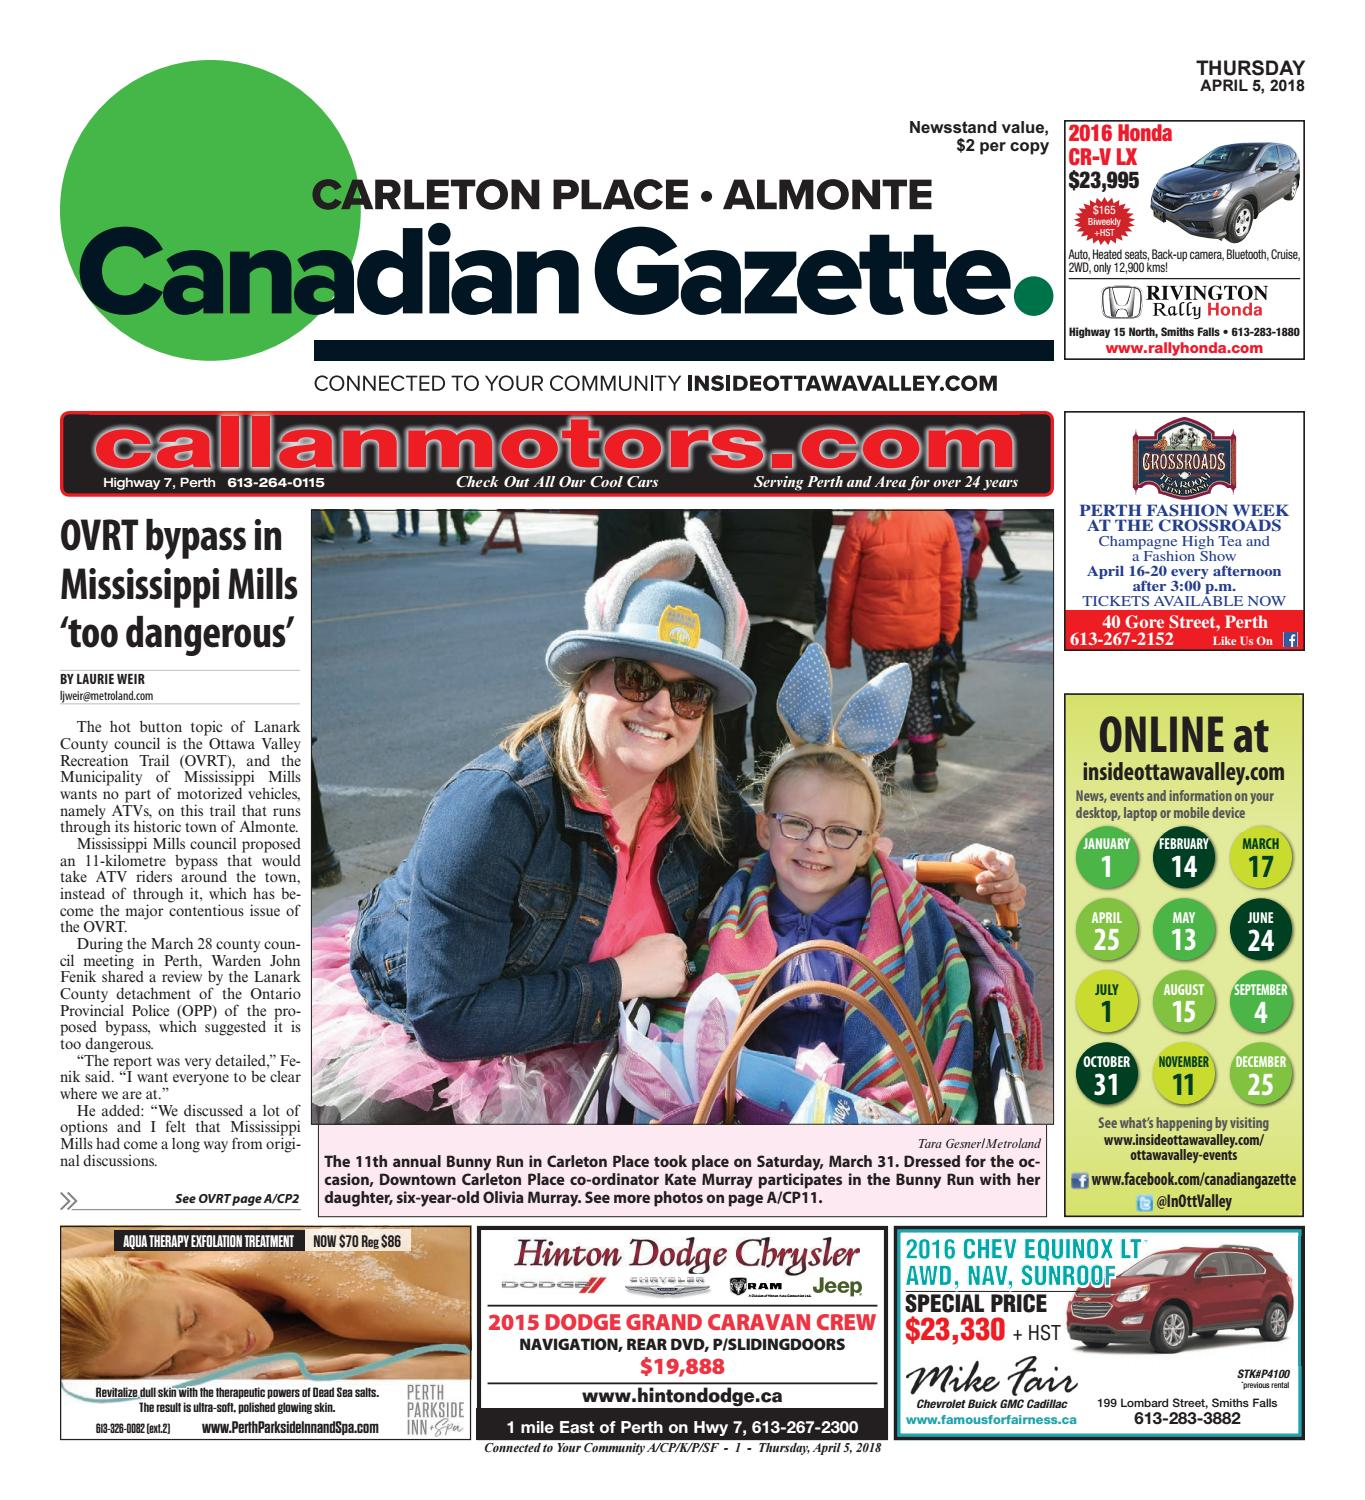 Almontecarletonplace040518 by metroland east almonte carleton almontecarletonplace040518 by metroland east almonte carleton place canadian gazette issuu fandeluxe Images